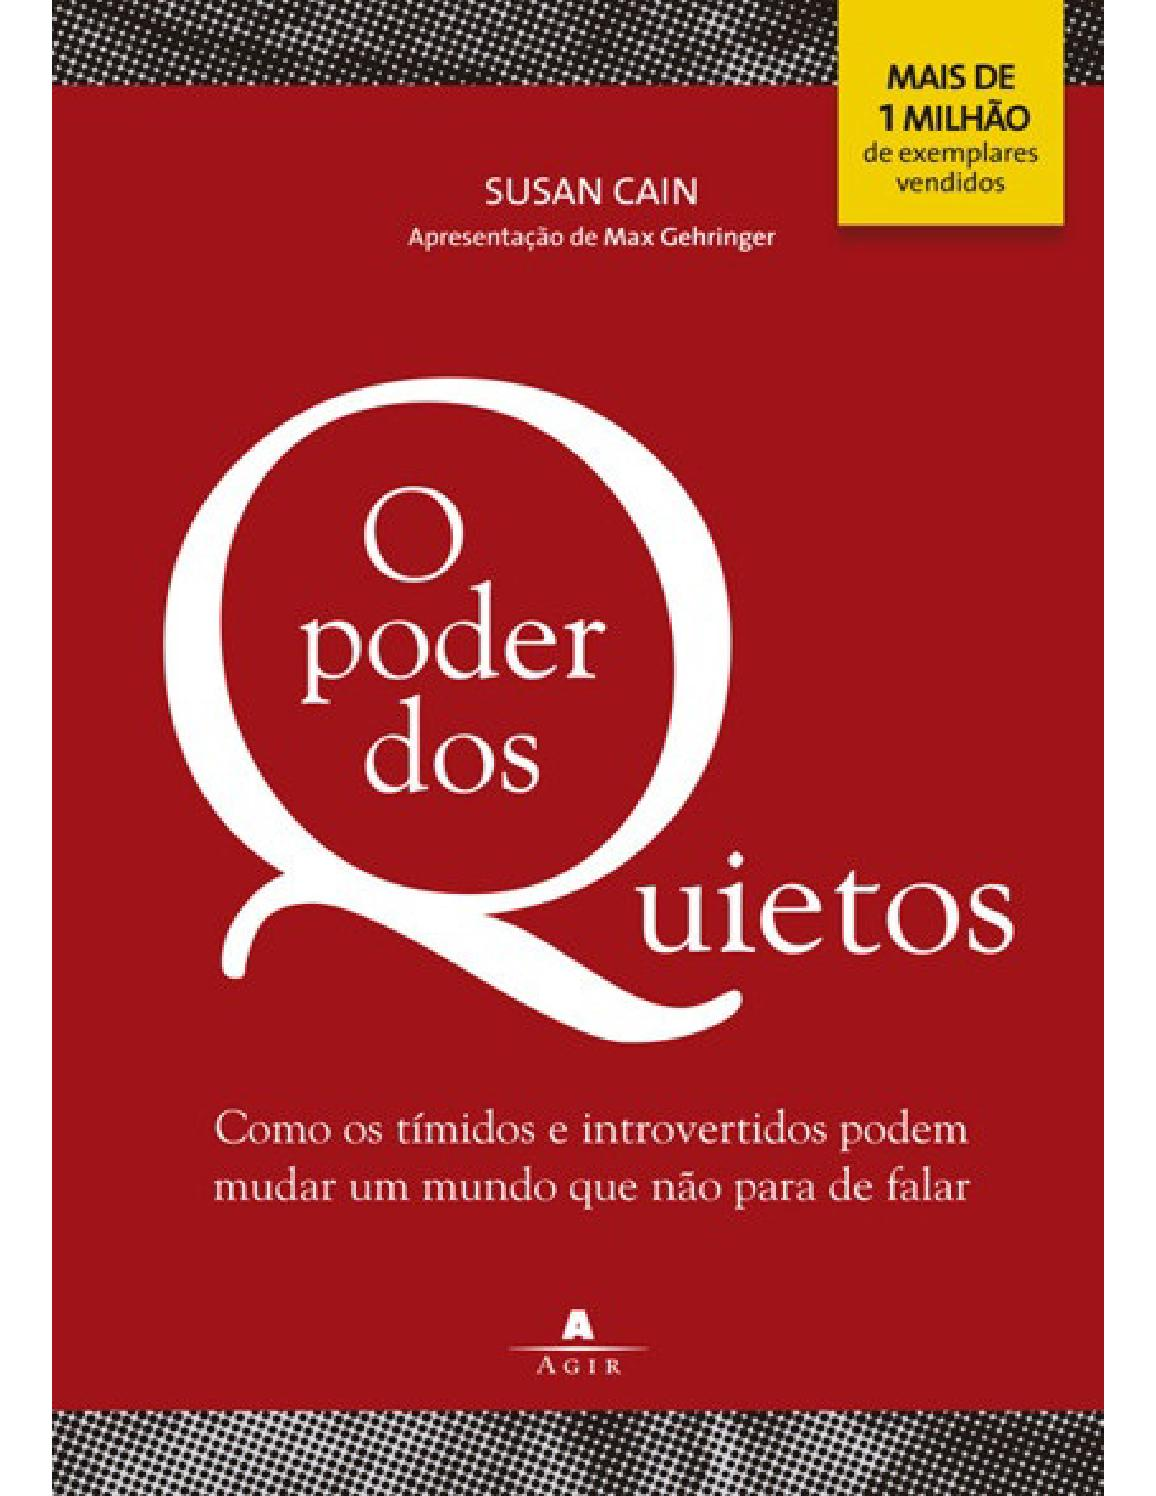 O poder dos quietos by rebeca paiva bahia issuu fandeluxe Image collections